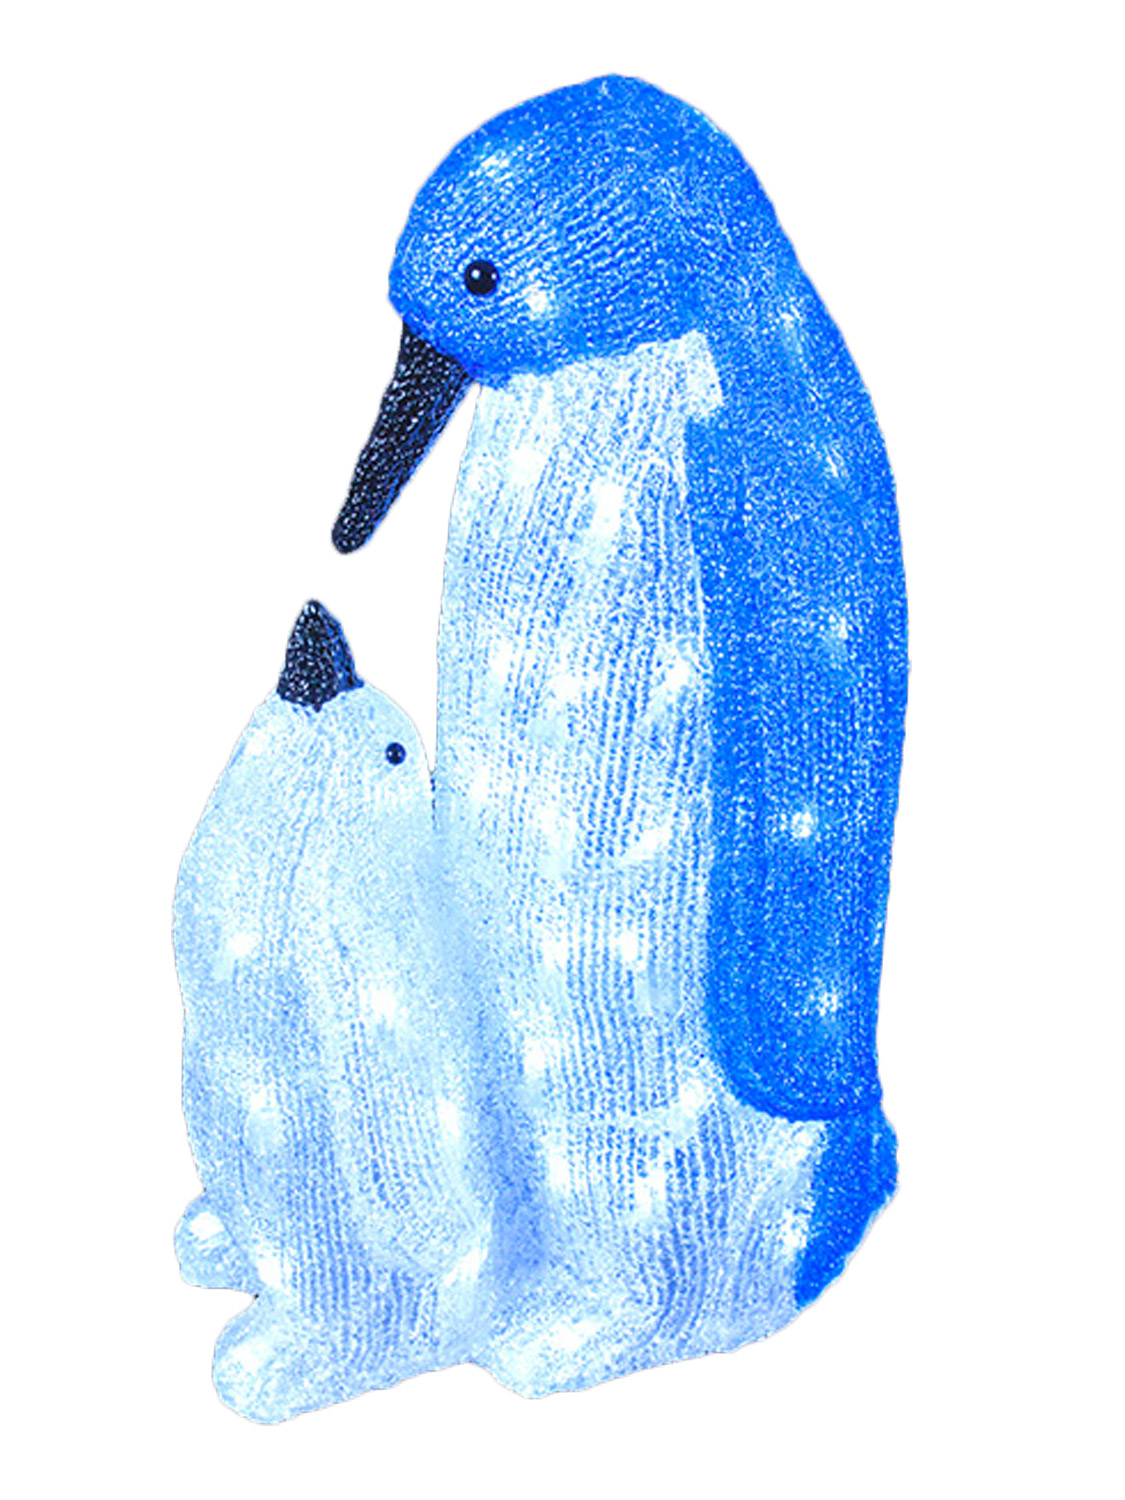 LED Acrylic Penguins Christmas Light Up Indoor Outdoor ...